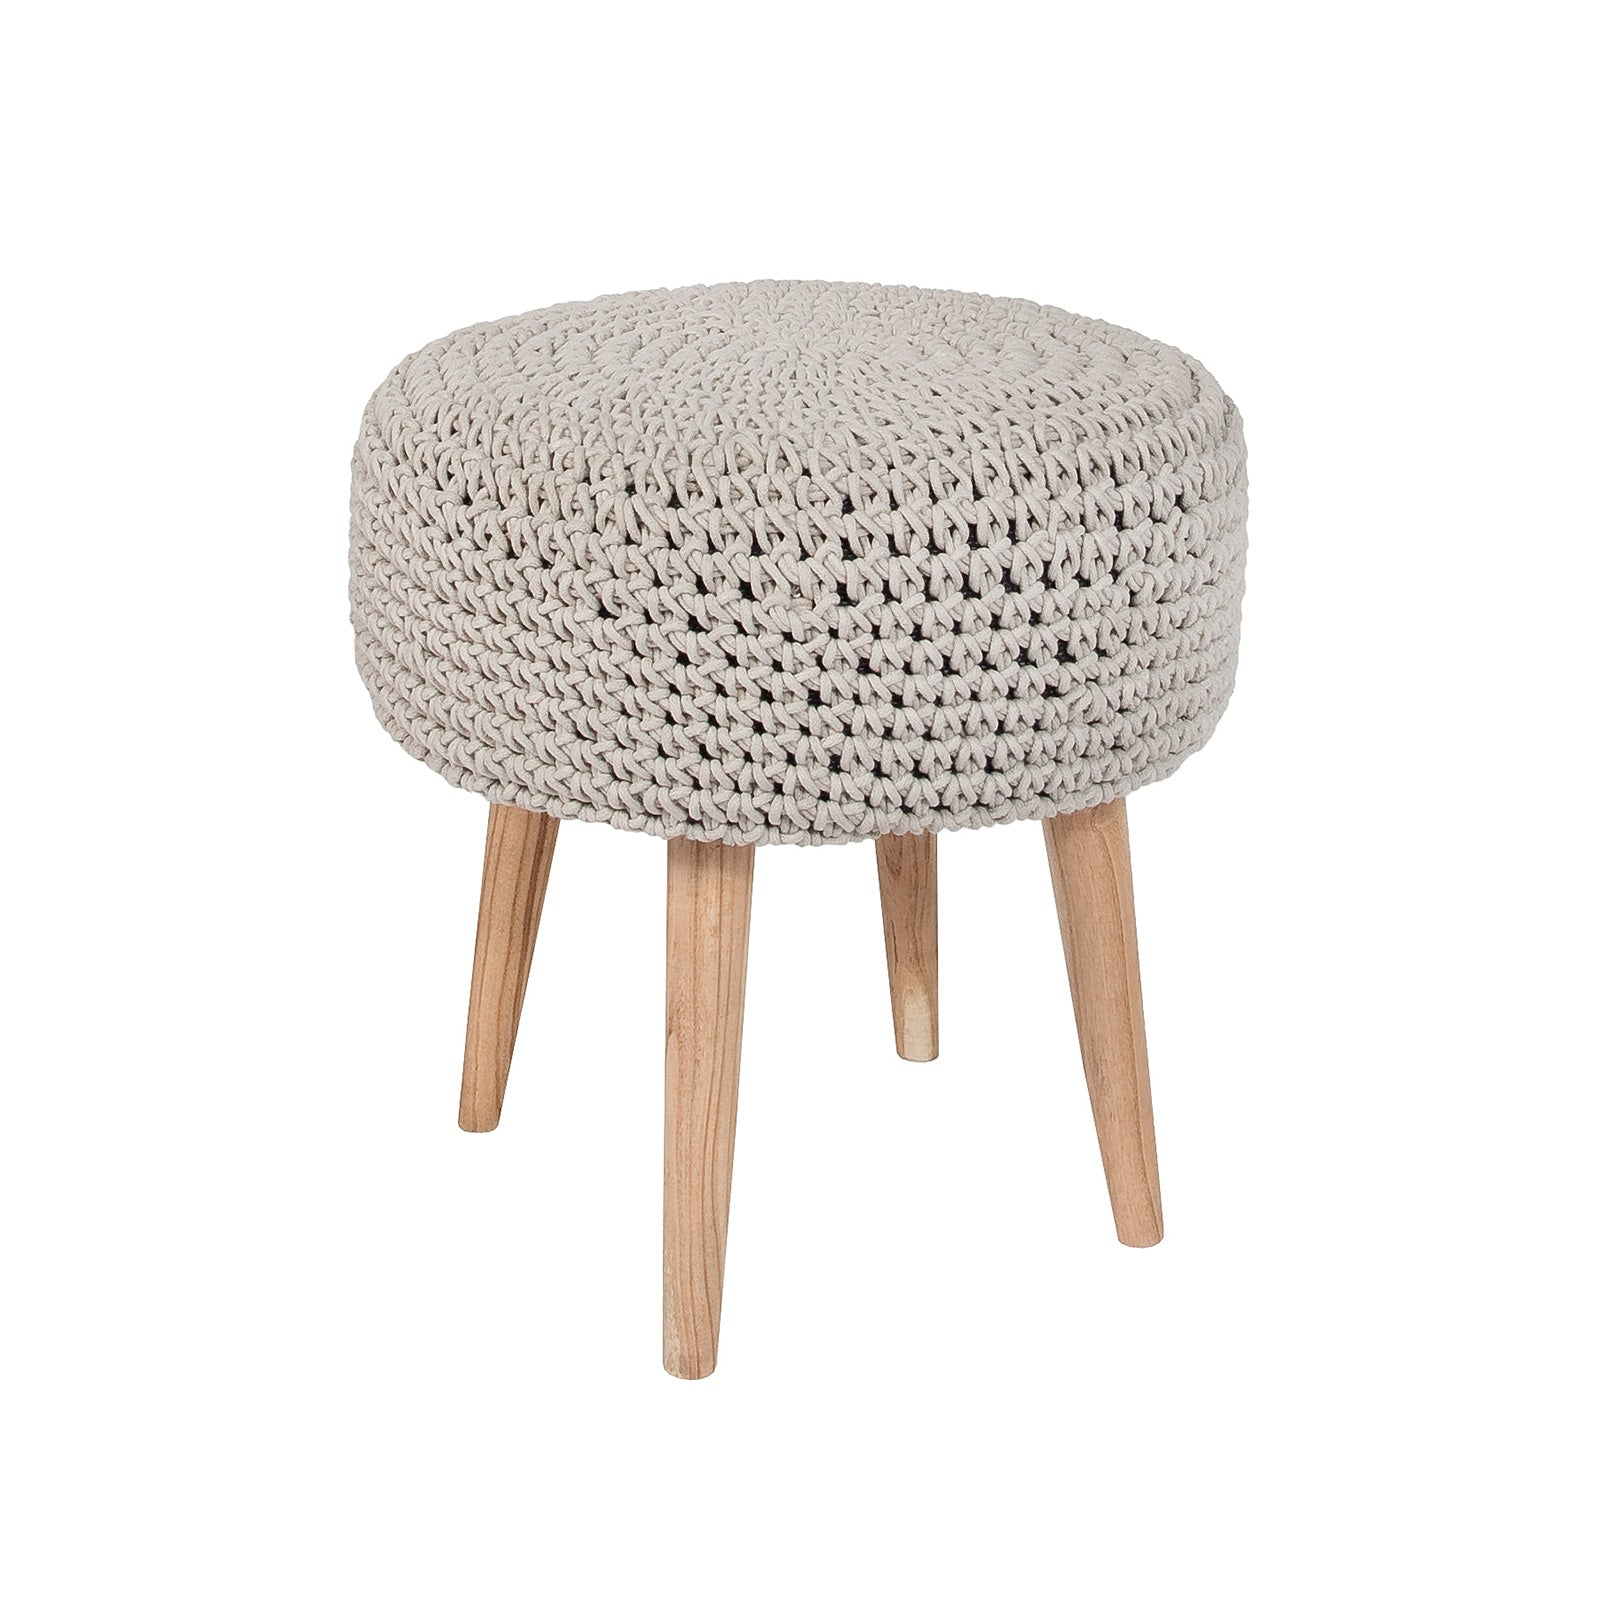 Bohemian Macrame Stool – Light Grey